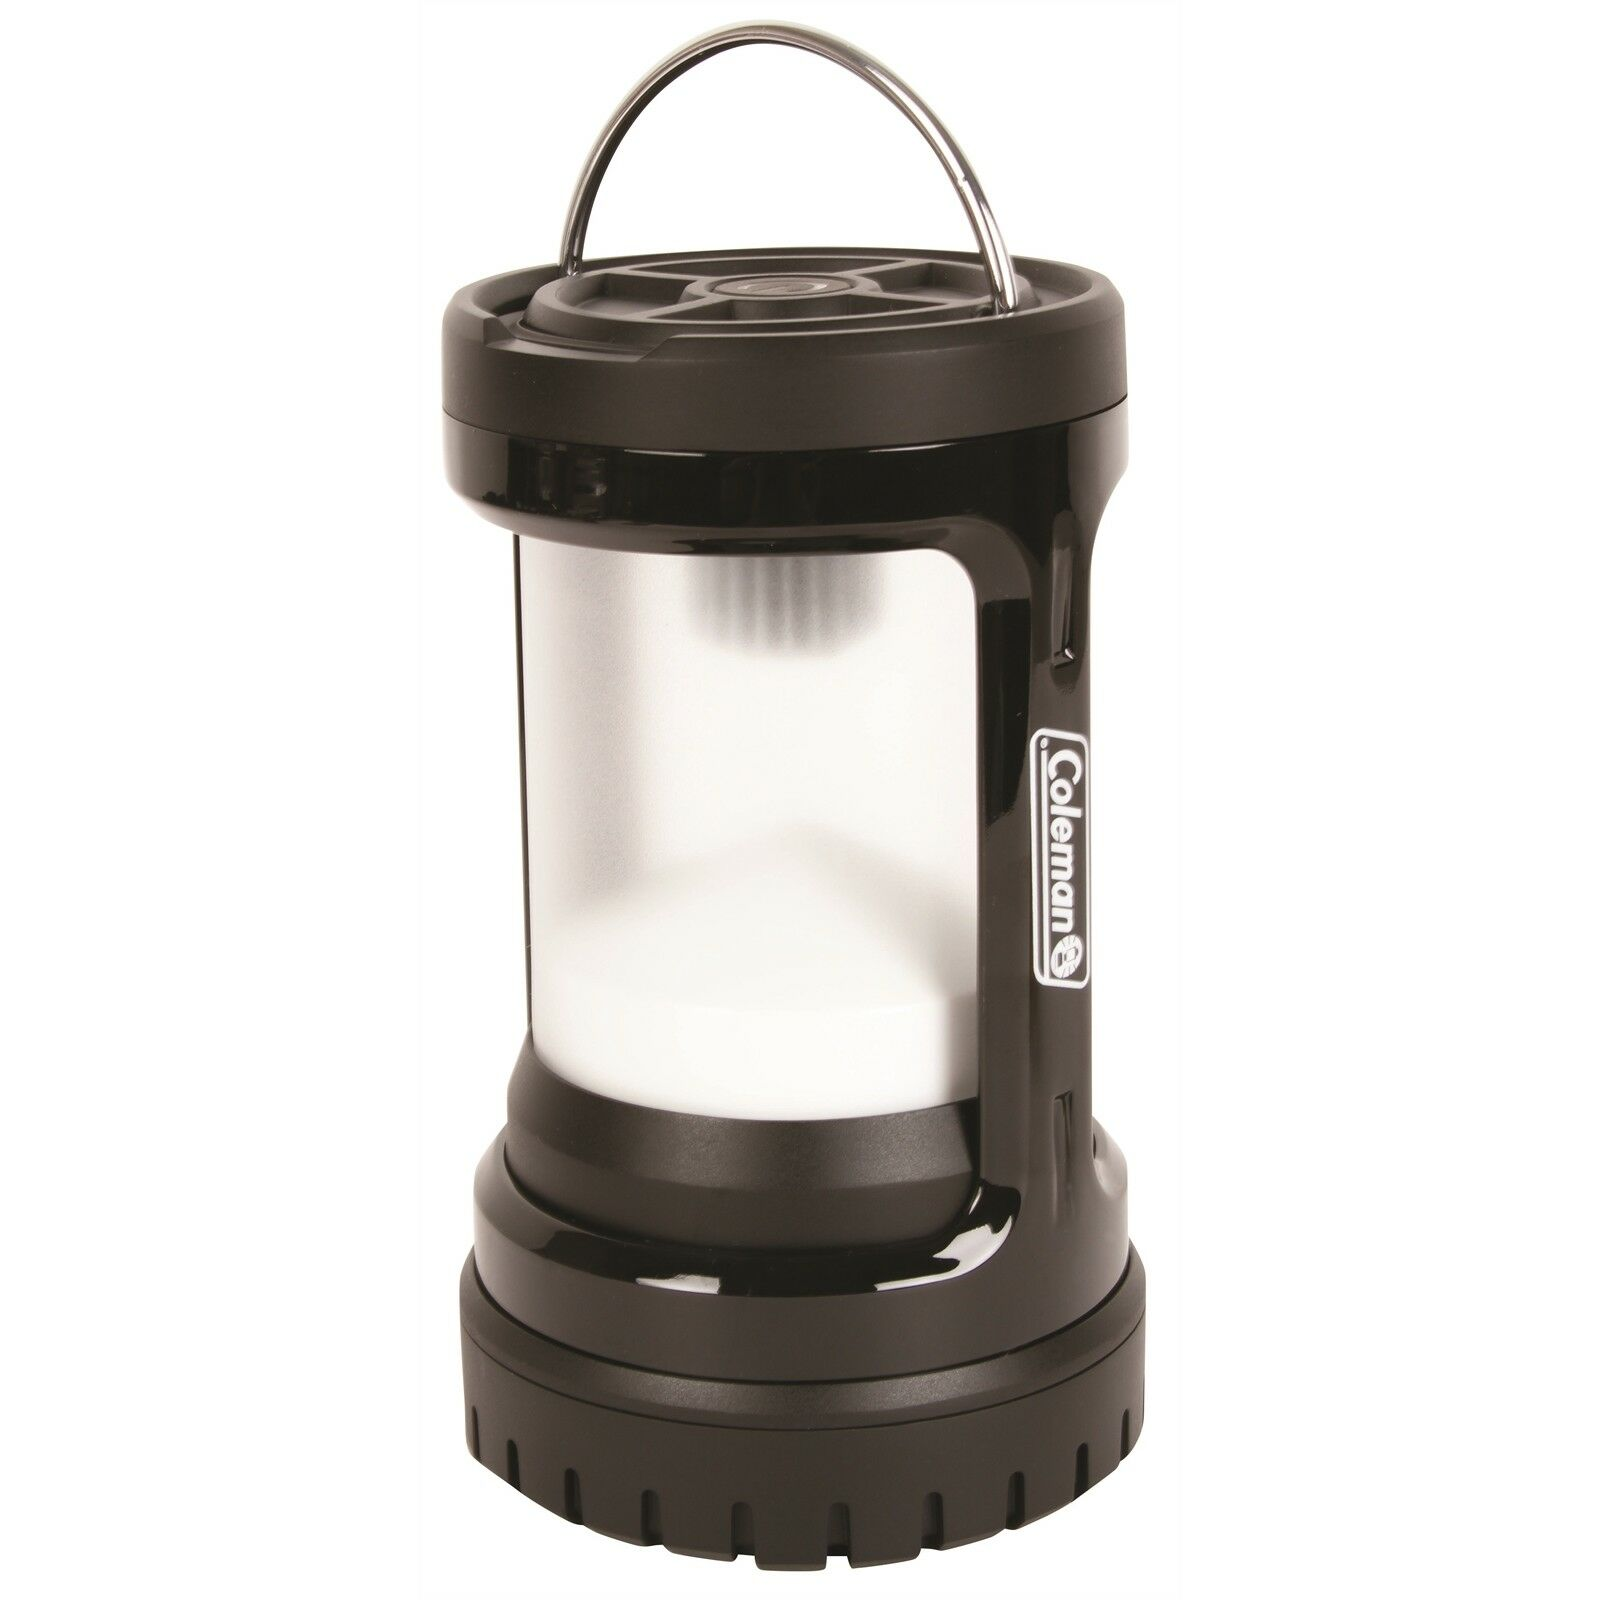 Coleman DIVIDE PUSH LED LANTERN 425-Lumen, 4 Operating  Modes USA Brand  cheap and top quality